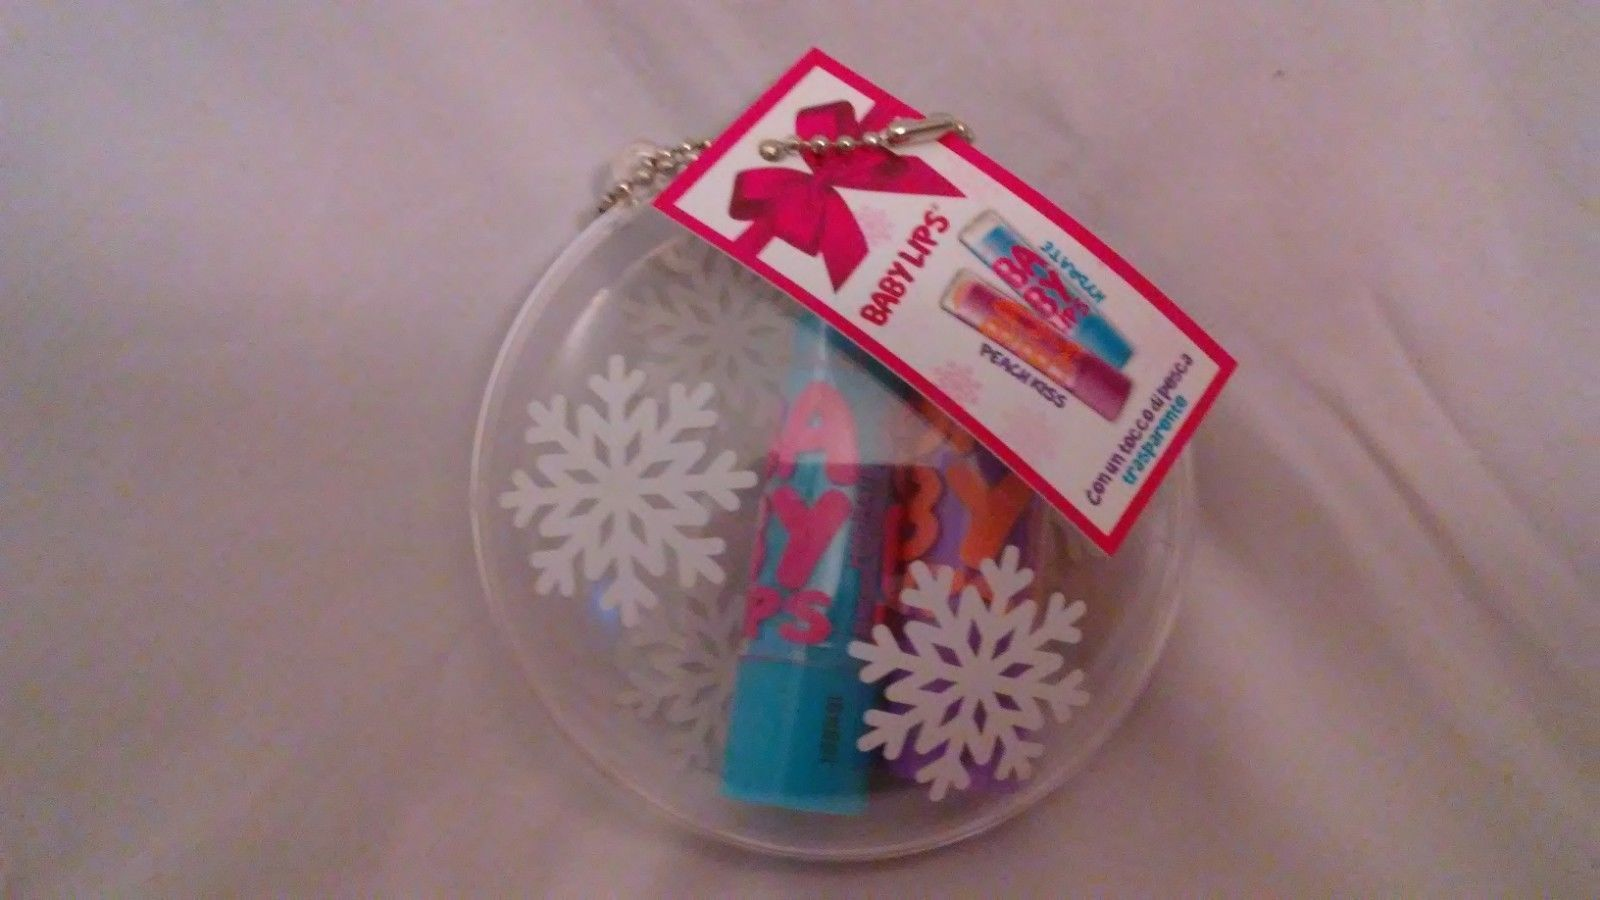 Maybelline Baby Lips Ornament Featuring Peach Kiss and Hydrate Baby Lips Gloss